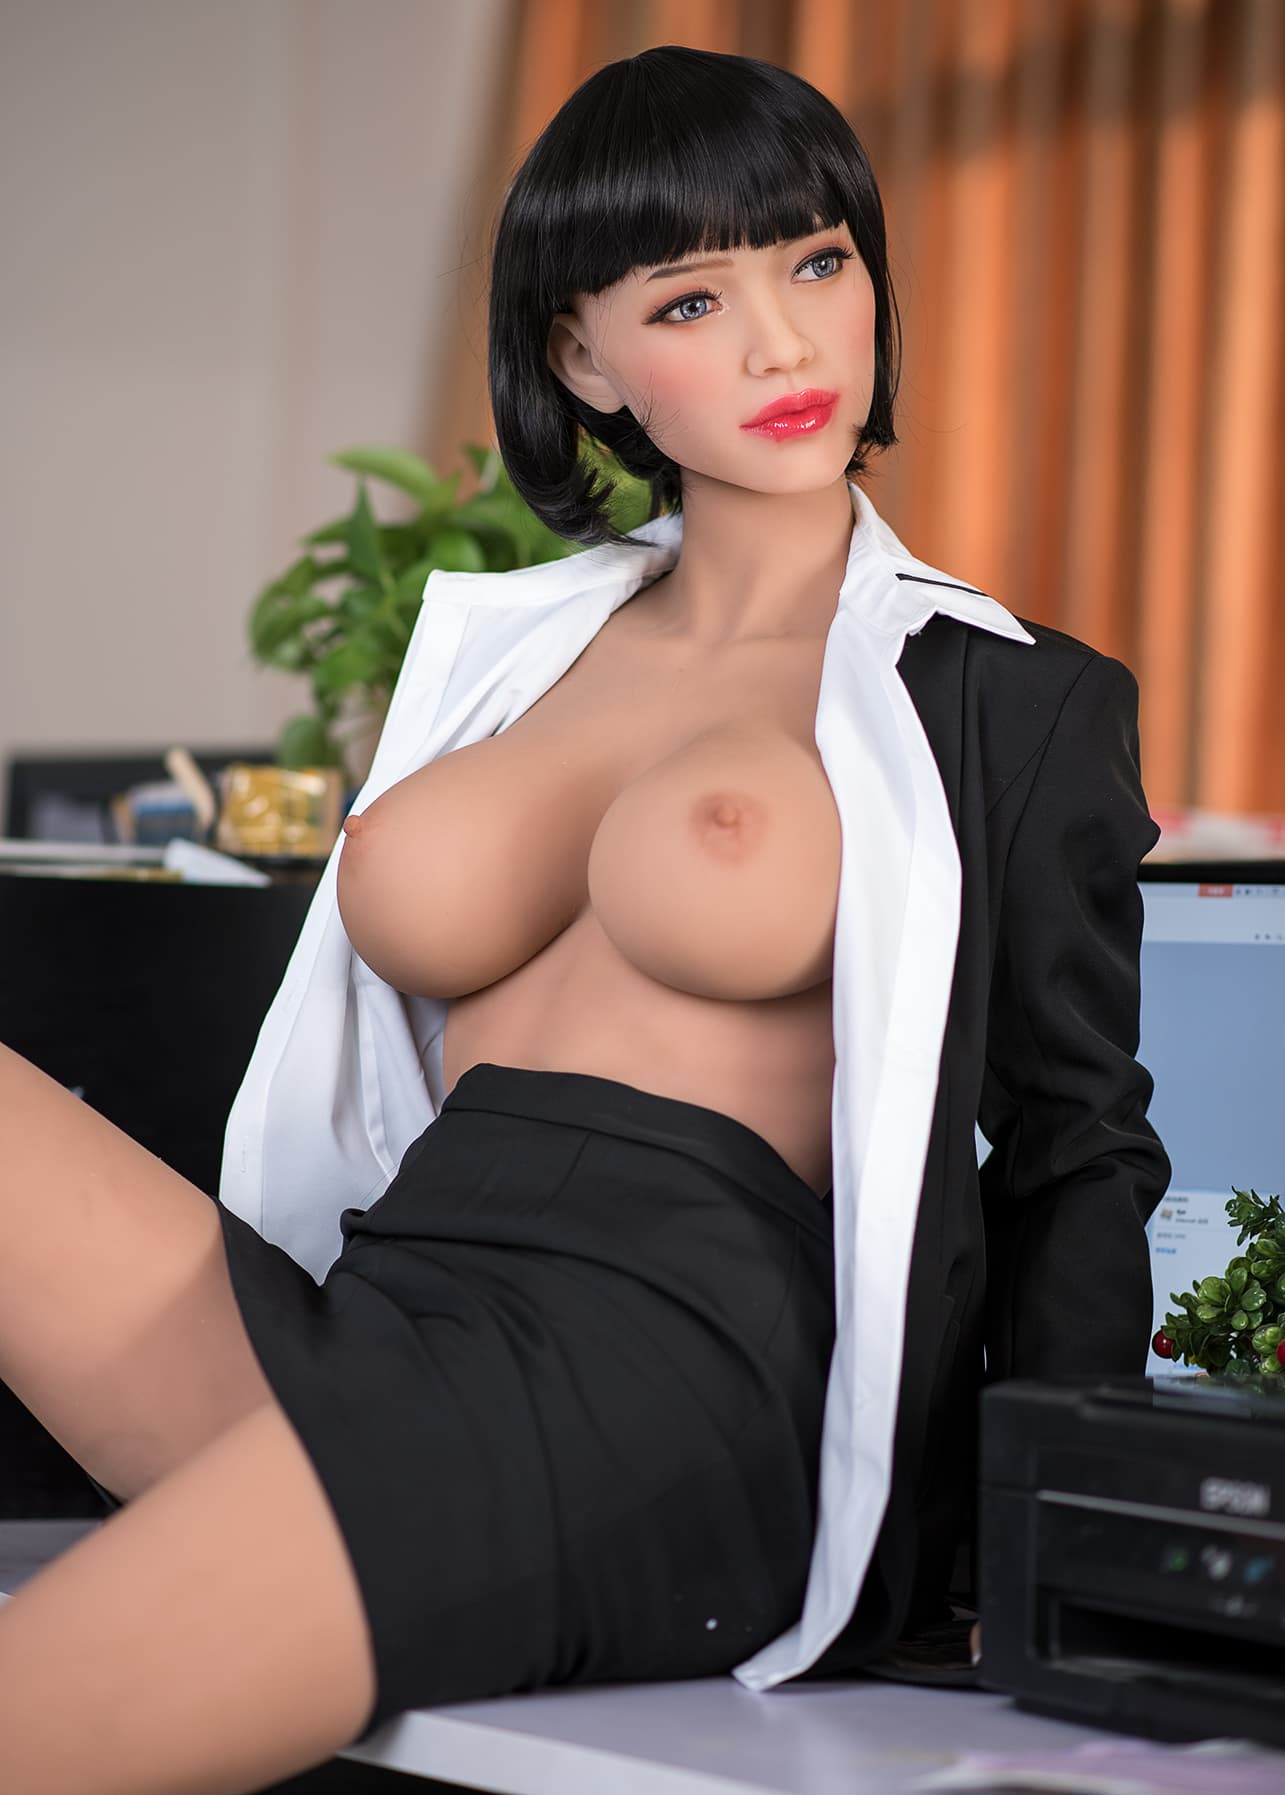 phranc 165cm black hair big boobs athletic tpe sex doll(6)